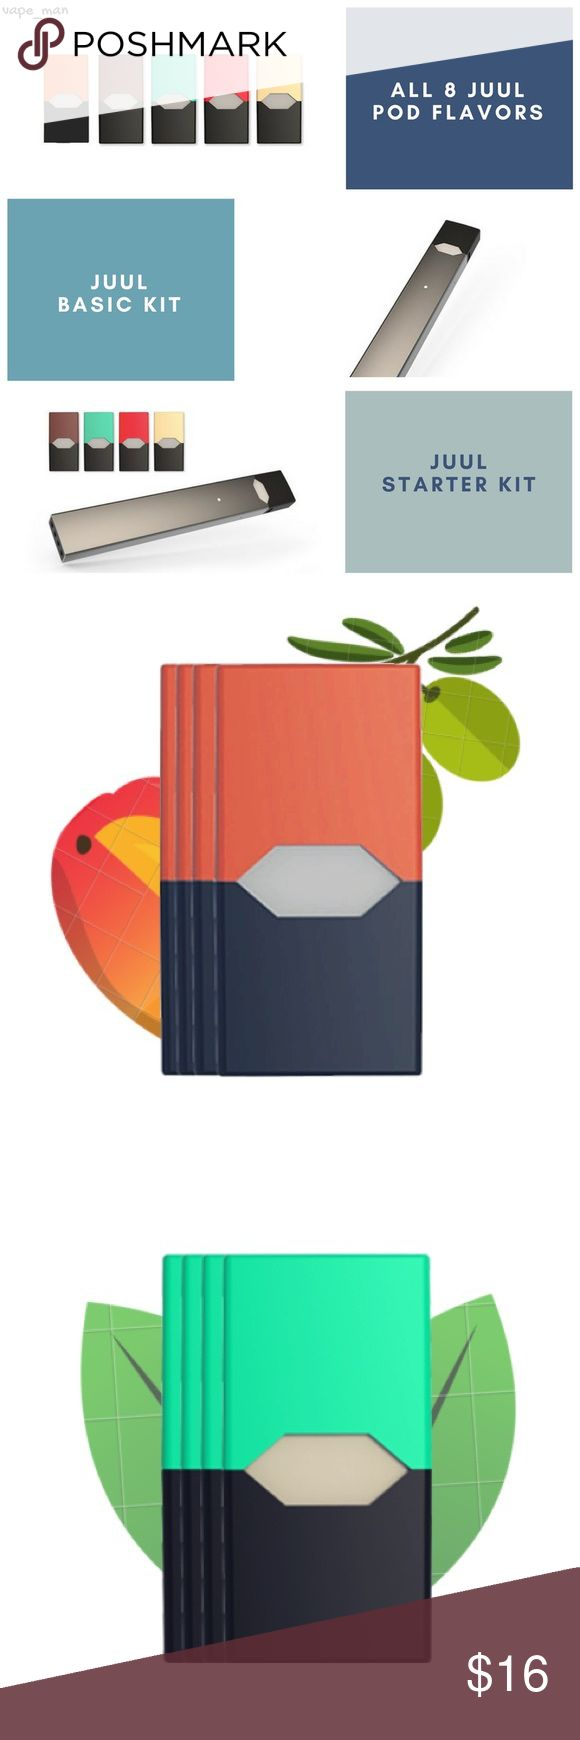 JUUL Pods - All 8 flavors - 4 Pods/pk - $16 JUUL Pods for sale - 100% Authentic - 4 Pods per pack - 5% Nic  All 8 flavors are available  Same day SHIPPING  No limit to how many you can order!   Discount only on orders of more than 8 packs.   ! JUUL Accessories